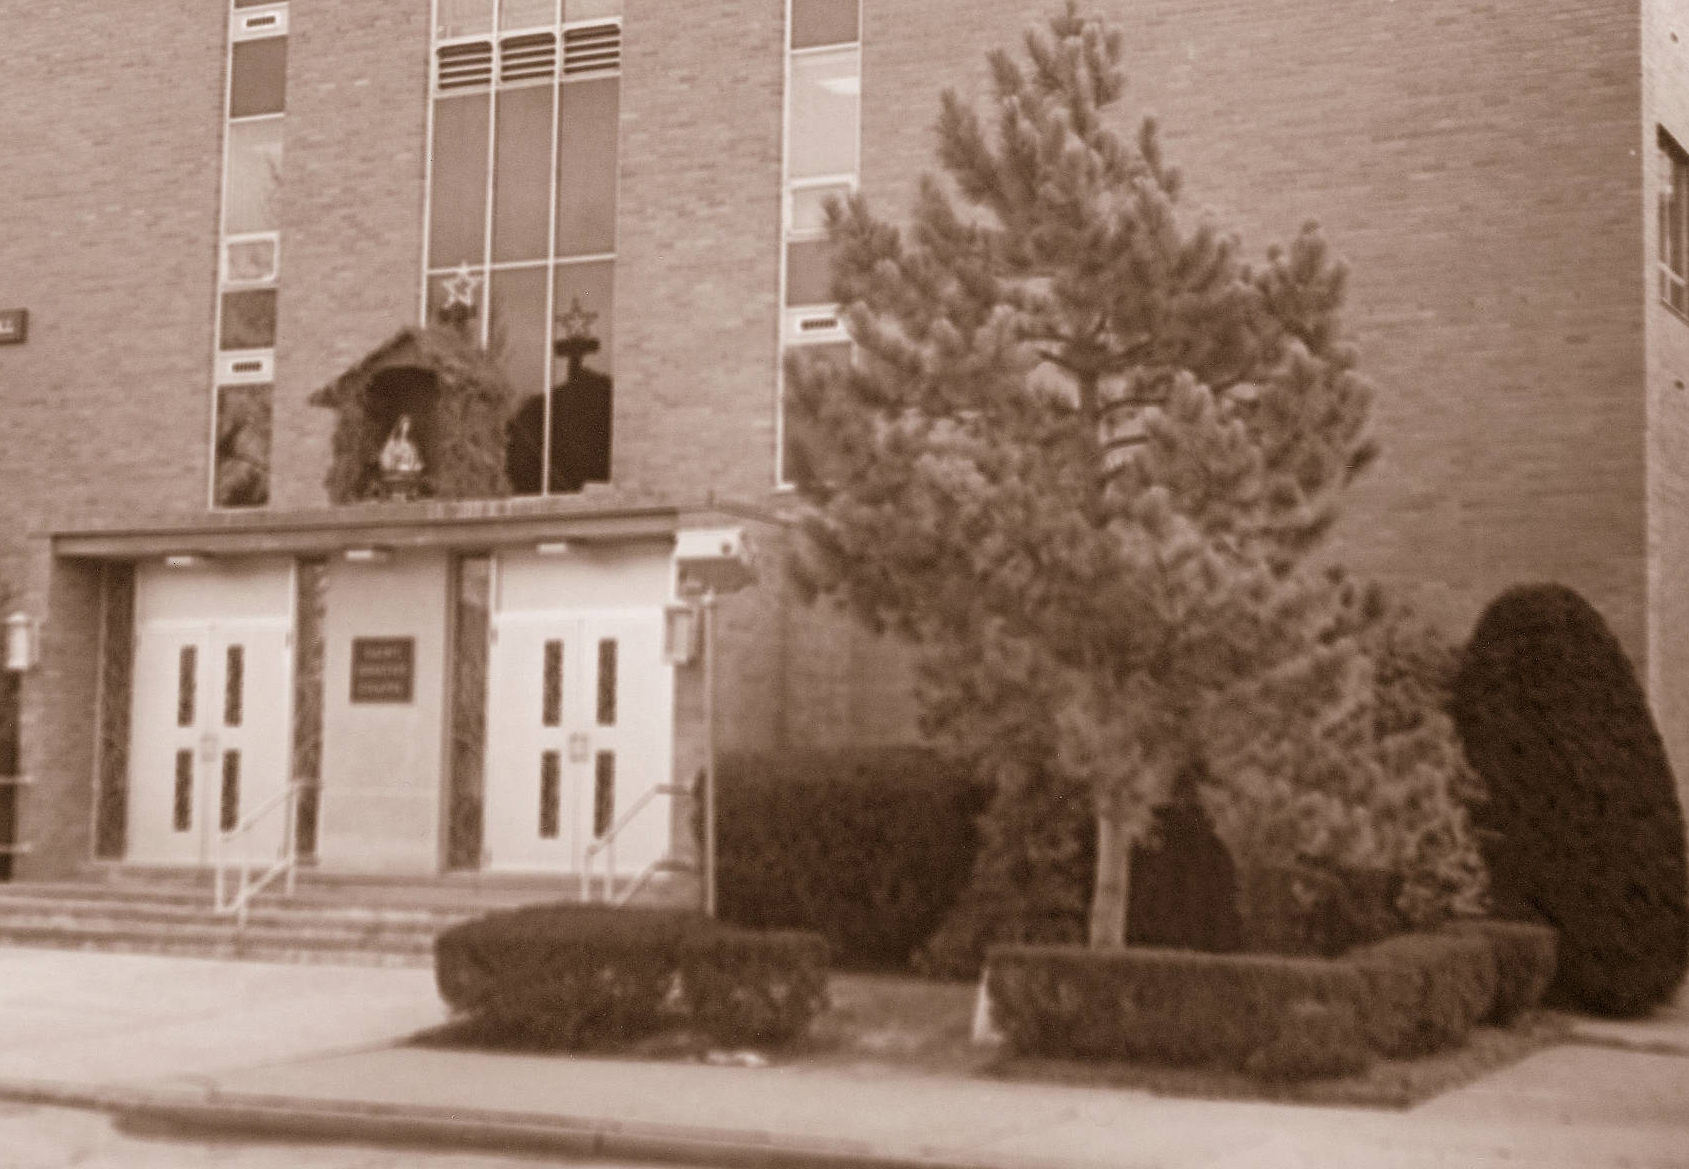 St. Thomas Hall, ca. 1990s